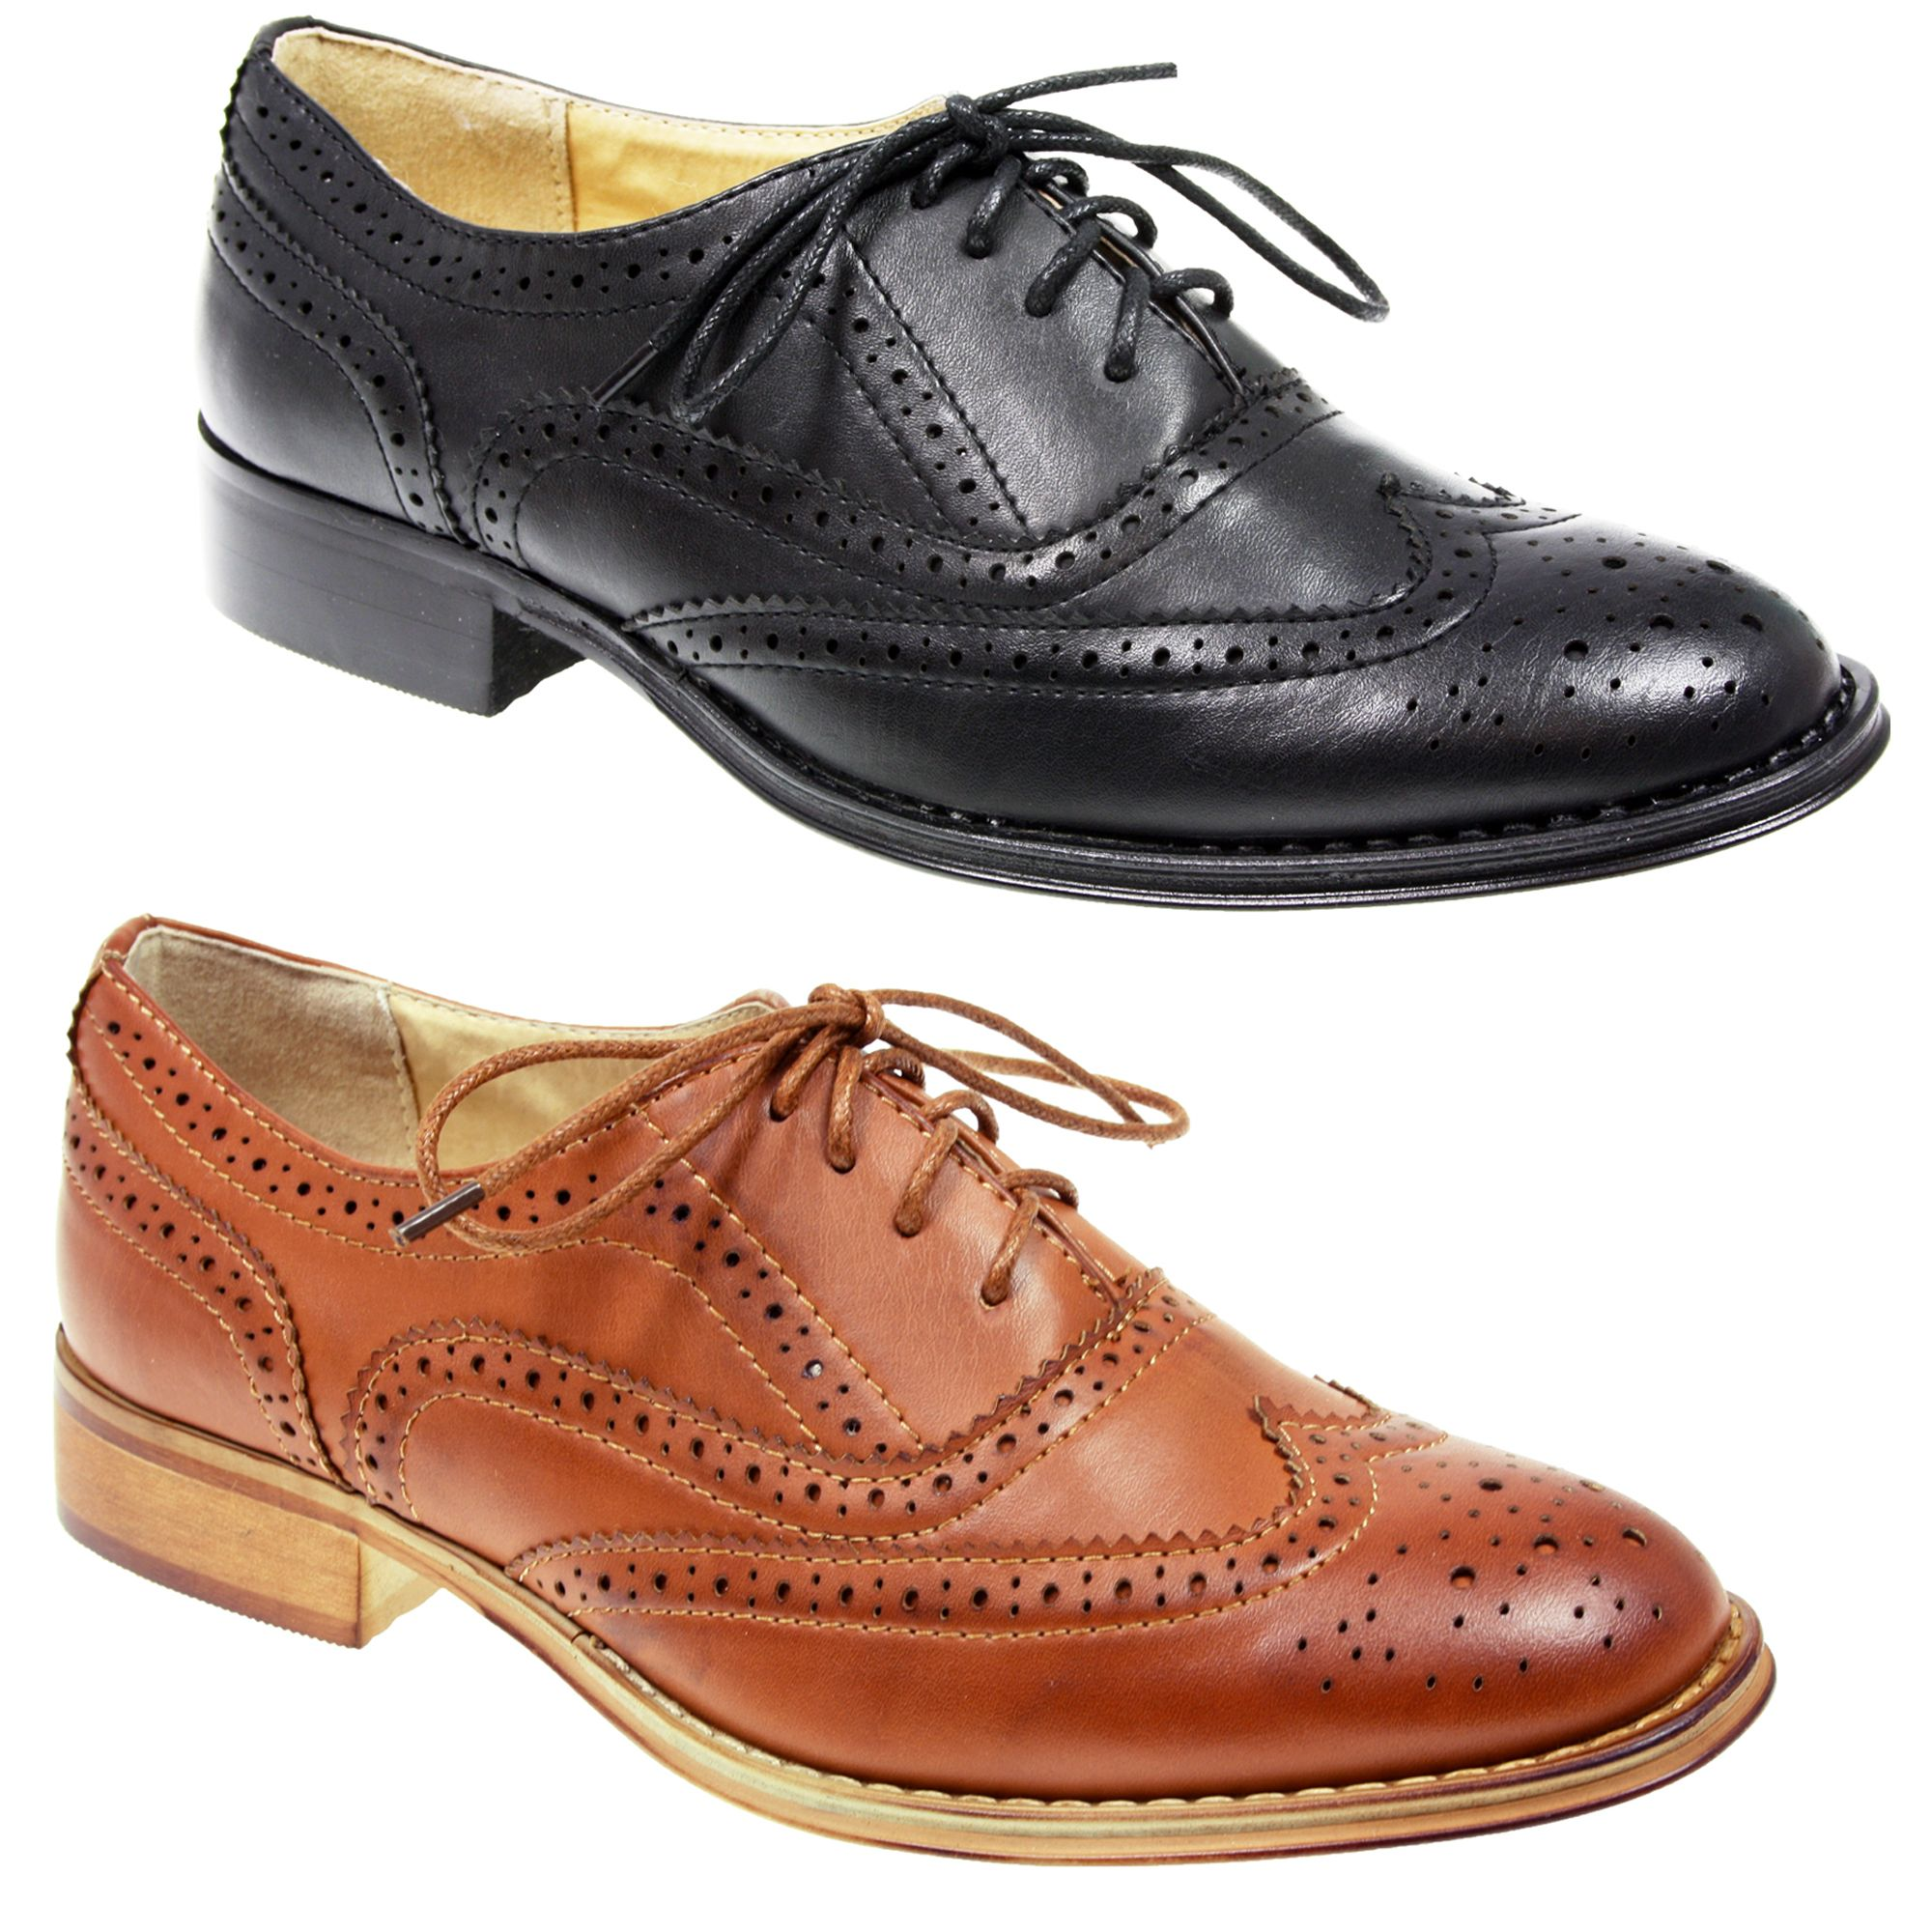 46f11fcfee2 Womens Ladies Lace Up Flat Office Formal School Oxford Brogue Black Tan  Shoes